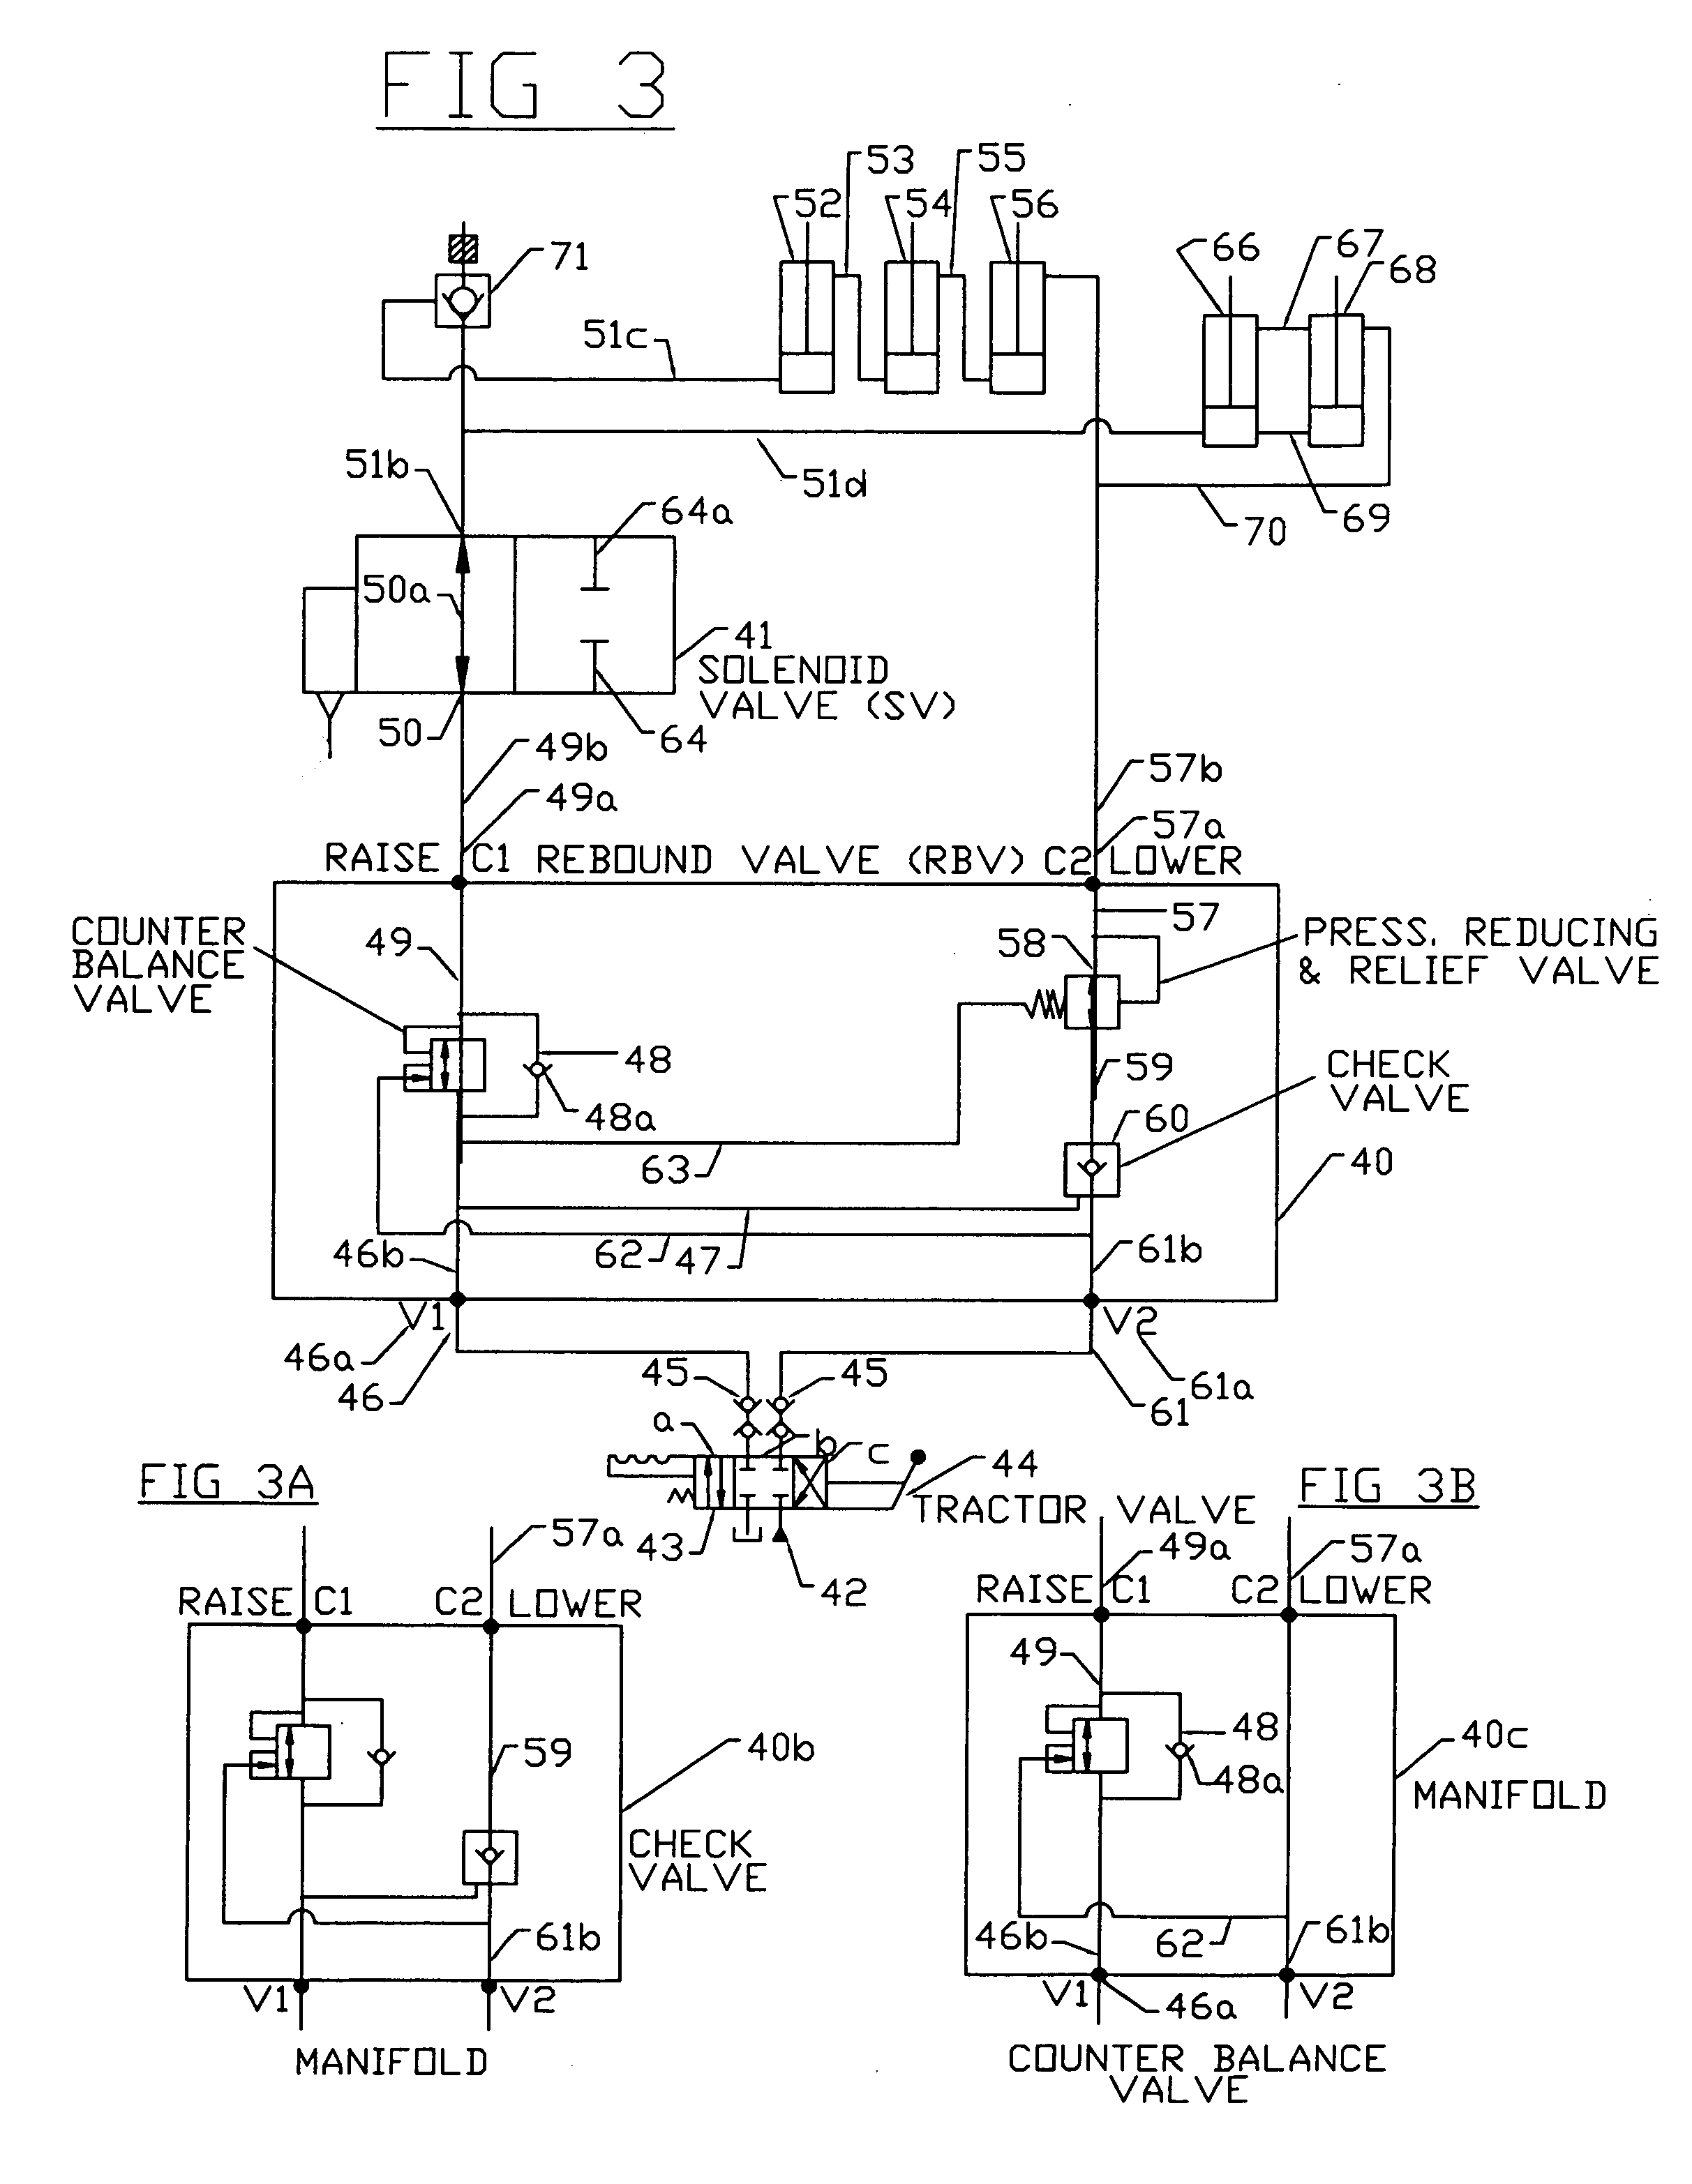 brevet us20050173137 selective position control system and method Battery Isolator Wiring-Diagram patent drawing